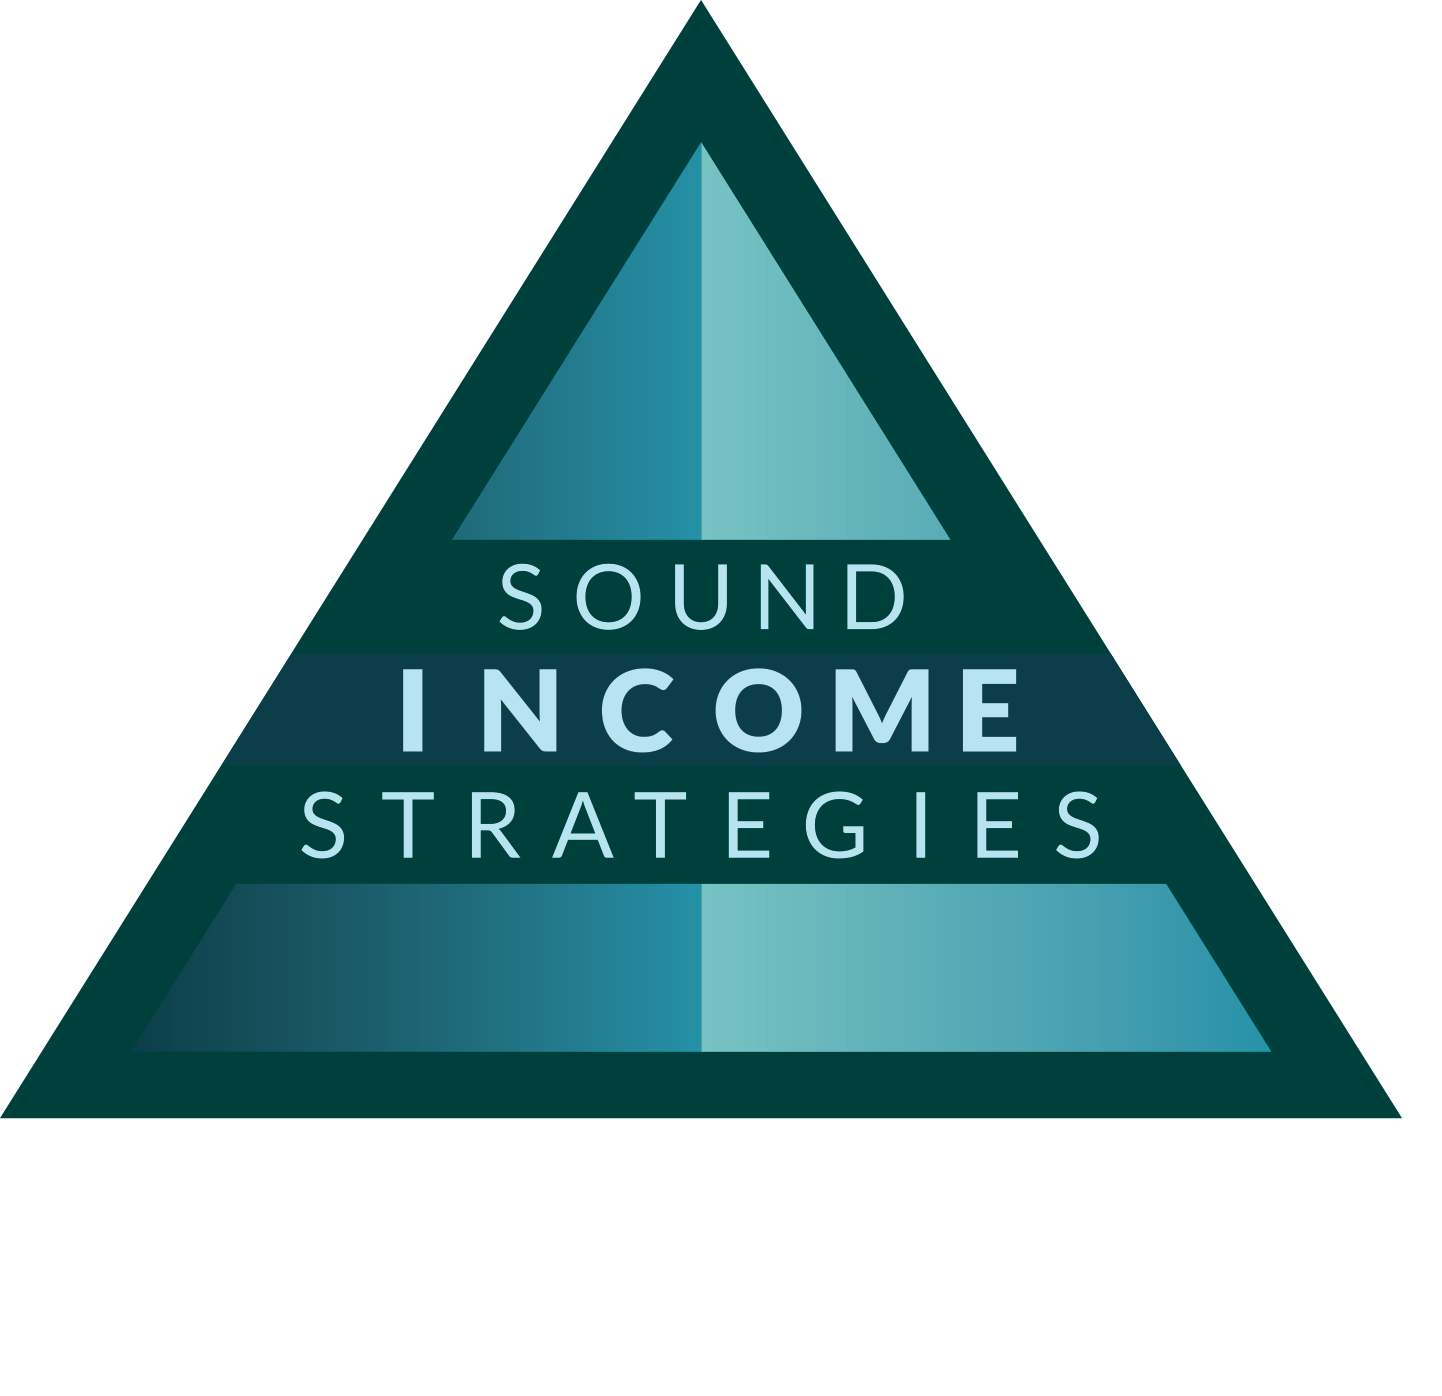 Sound Income Strategies, Inc.